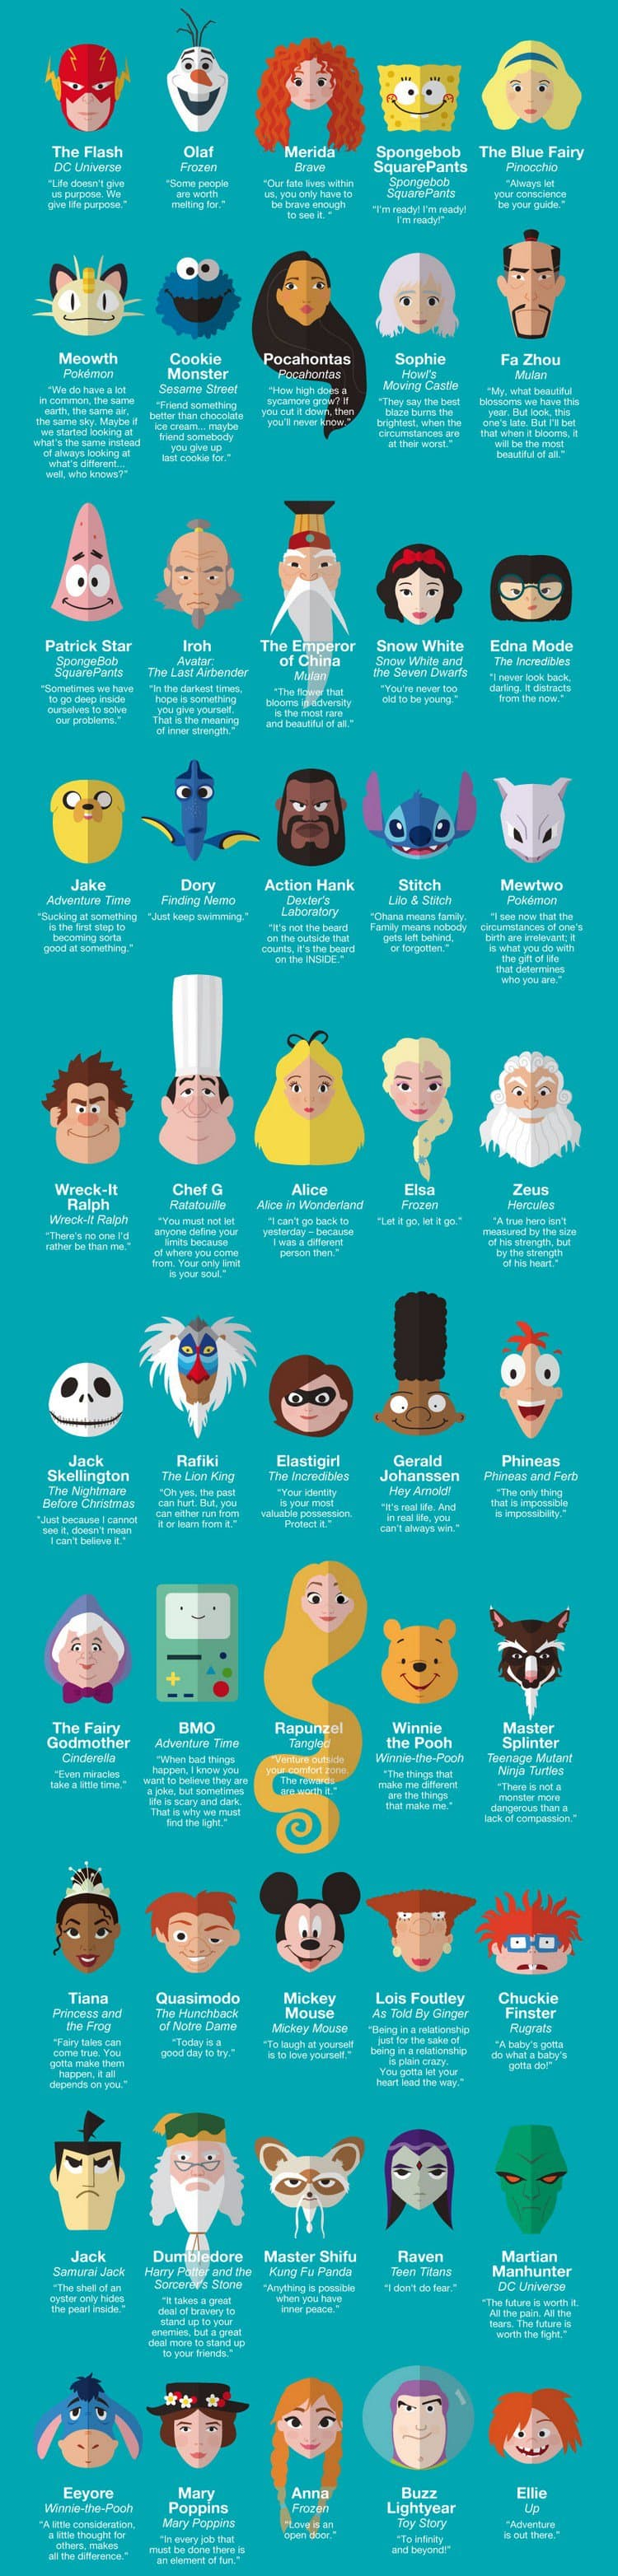 50 inspiring quotes characters